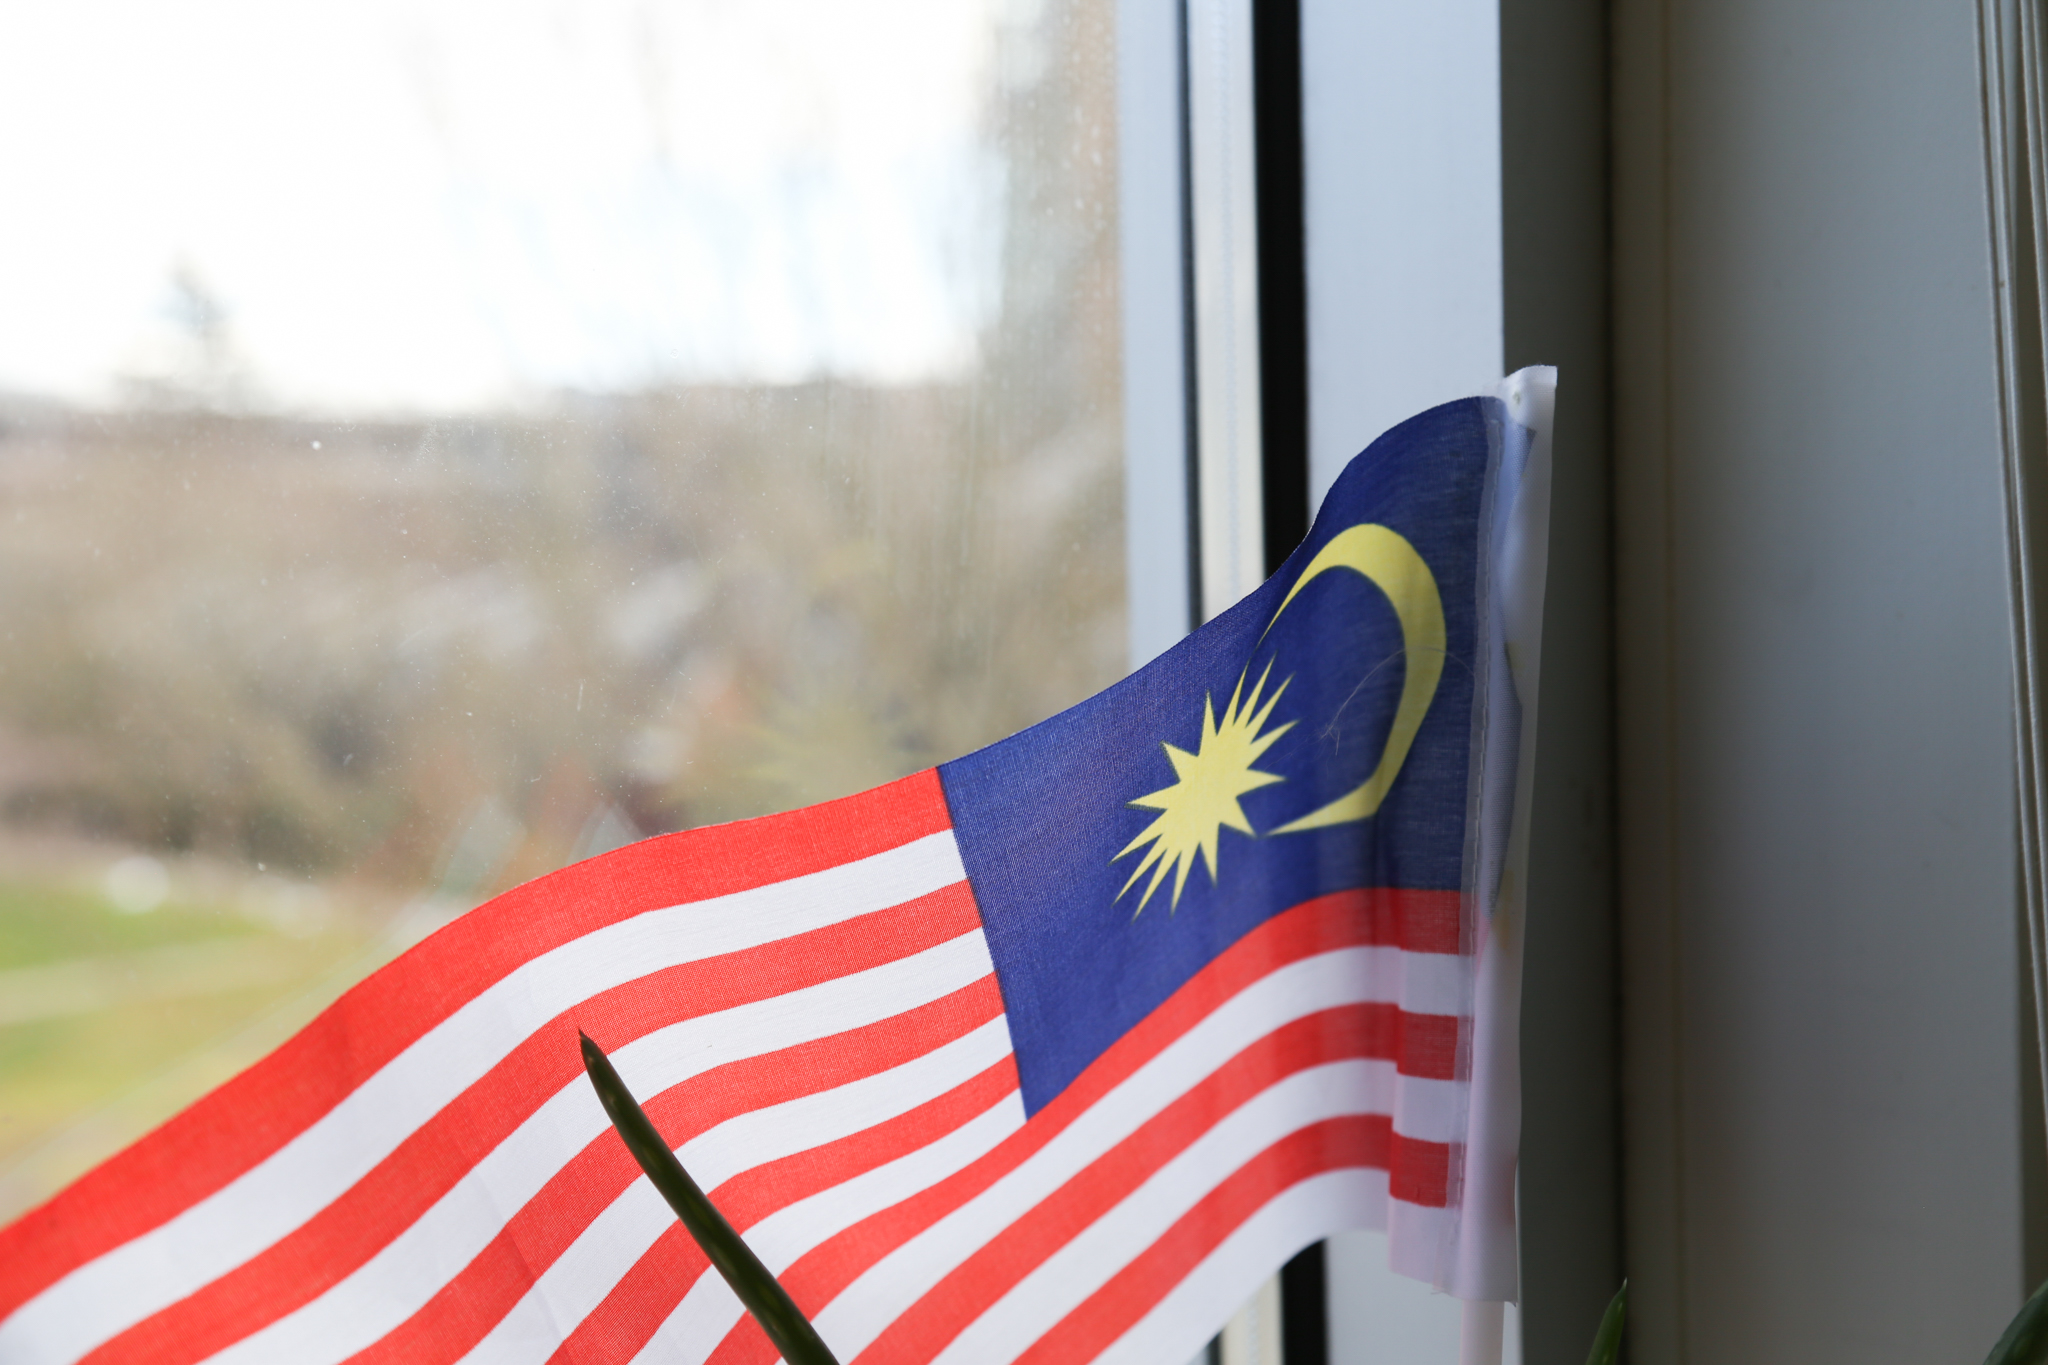 A Malaysian flag stands in the corner of Lee's room, where the window meets her work desk.